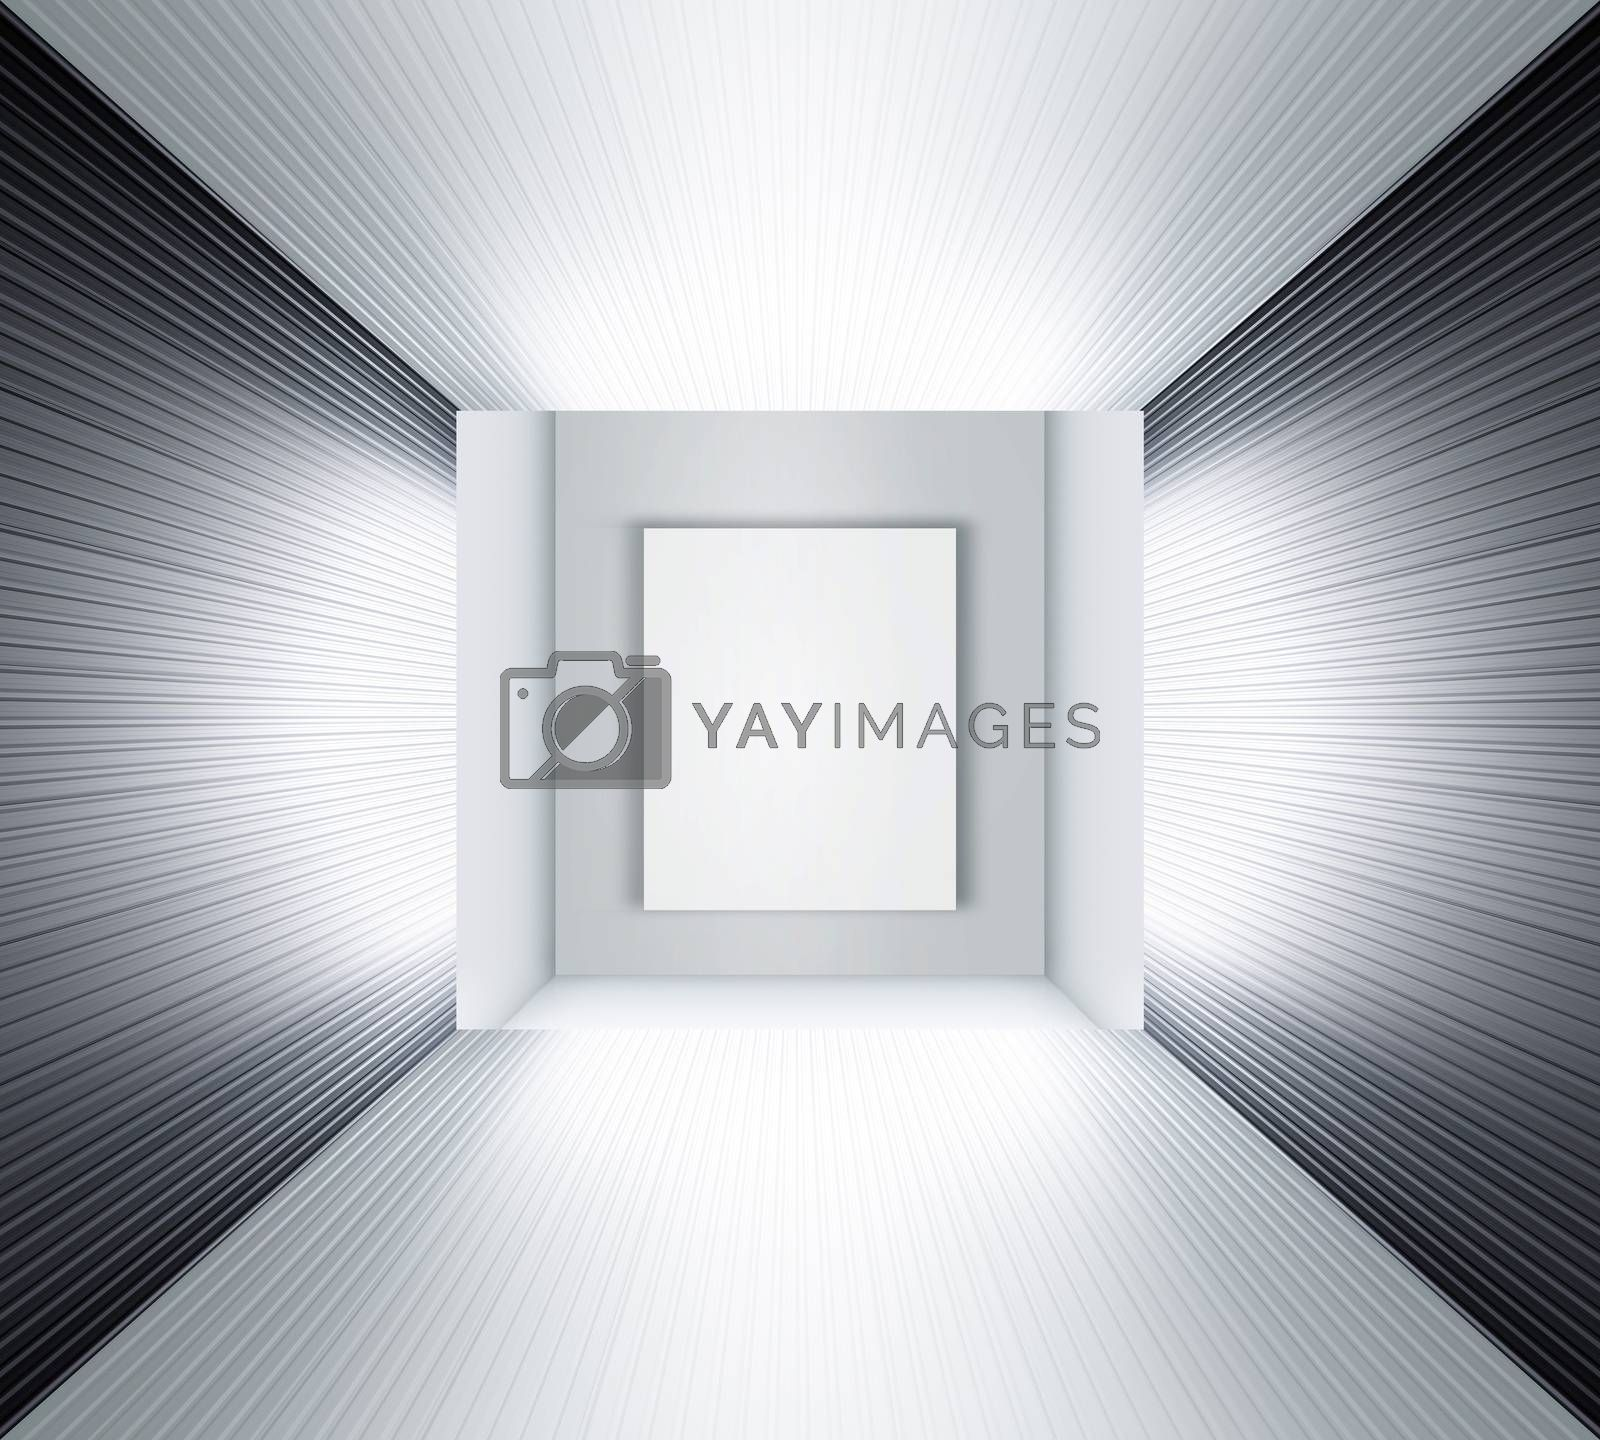 3D illustration of modern white exhibition space like museum or studio